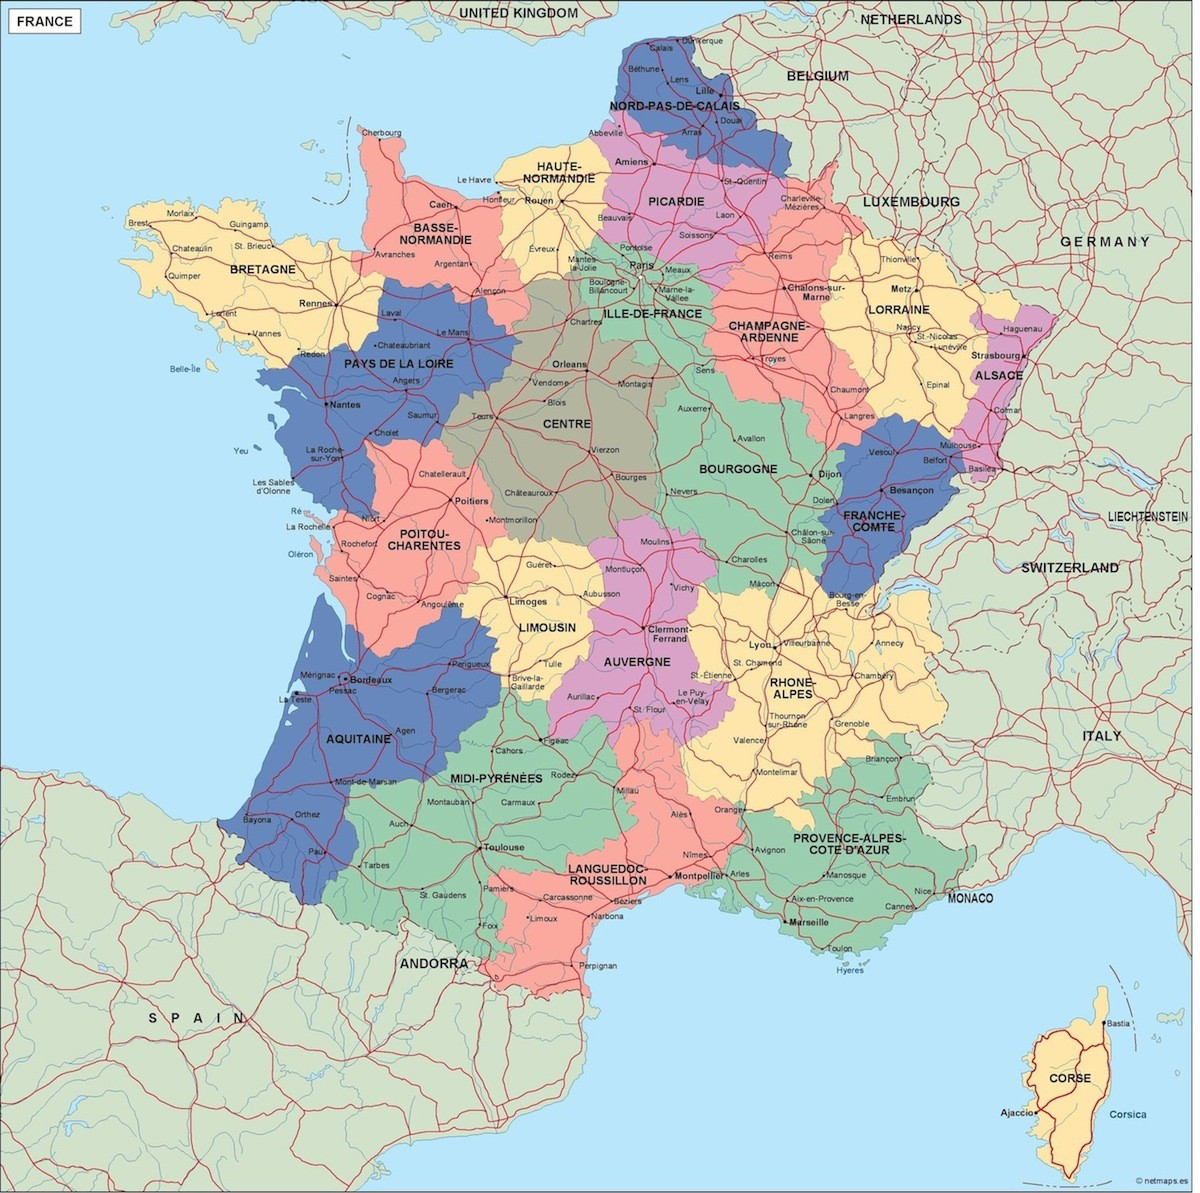 france political map Illustrator Vector Eps maps Eps Illustrator